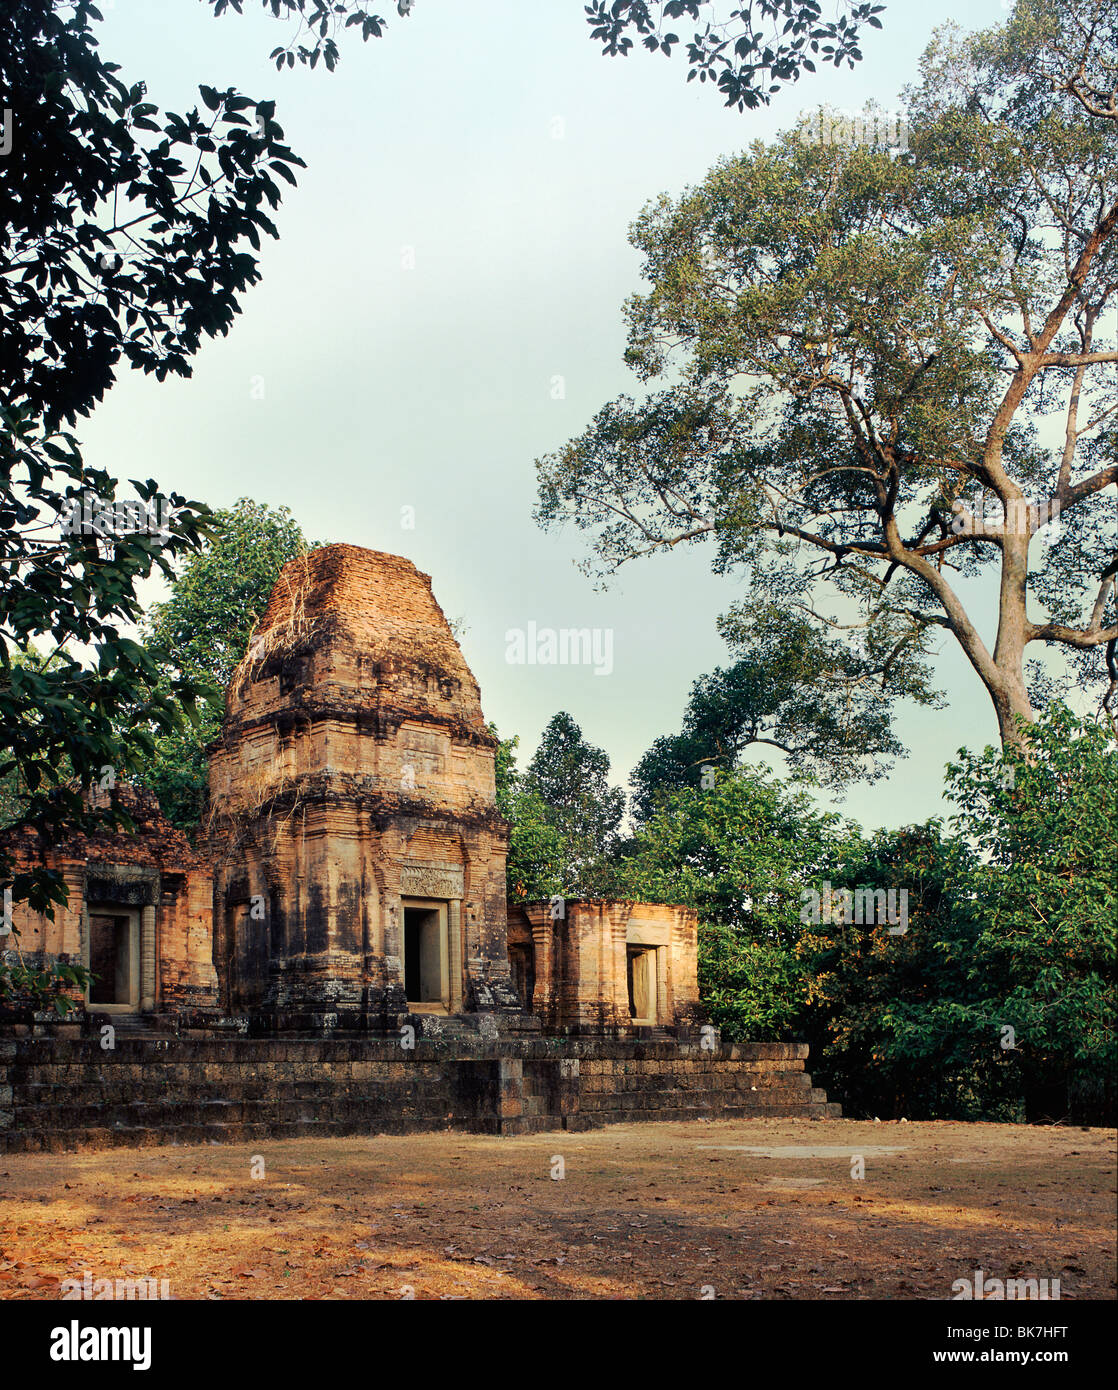 Prasat Bei dating from the 10th century, Angkor, UNESCO World Heritage Site, Cambodia, Indochina, Southeast Asia, - Stock Image